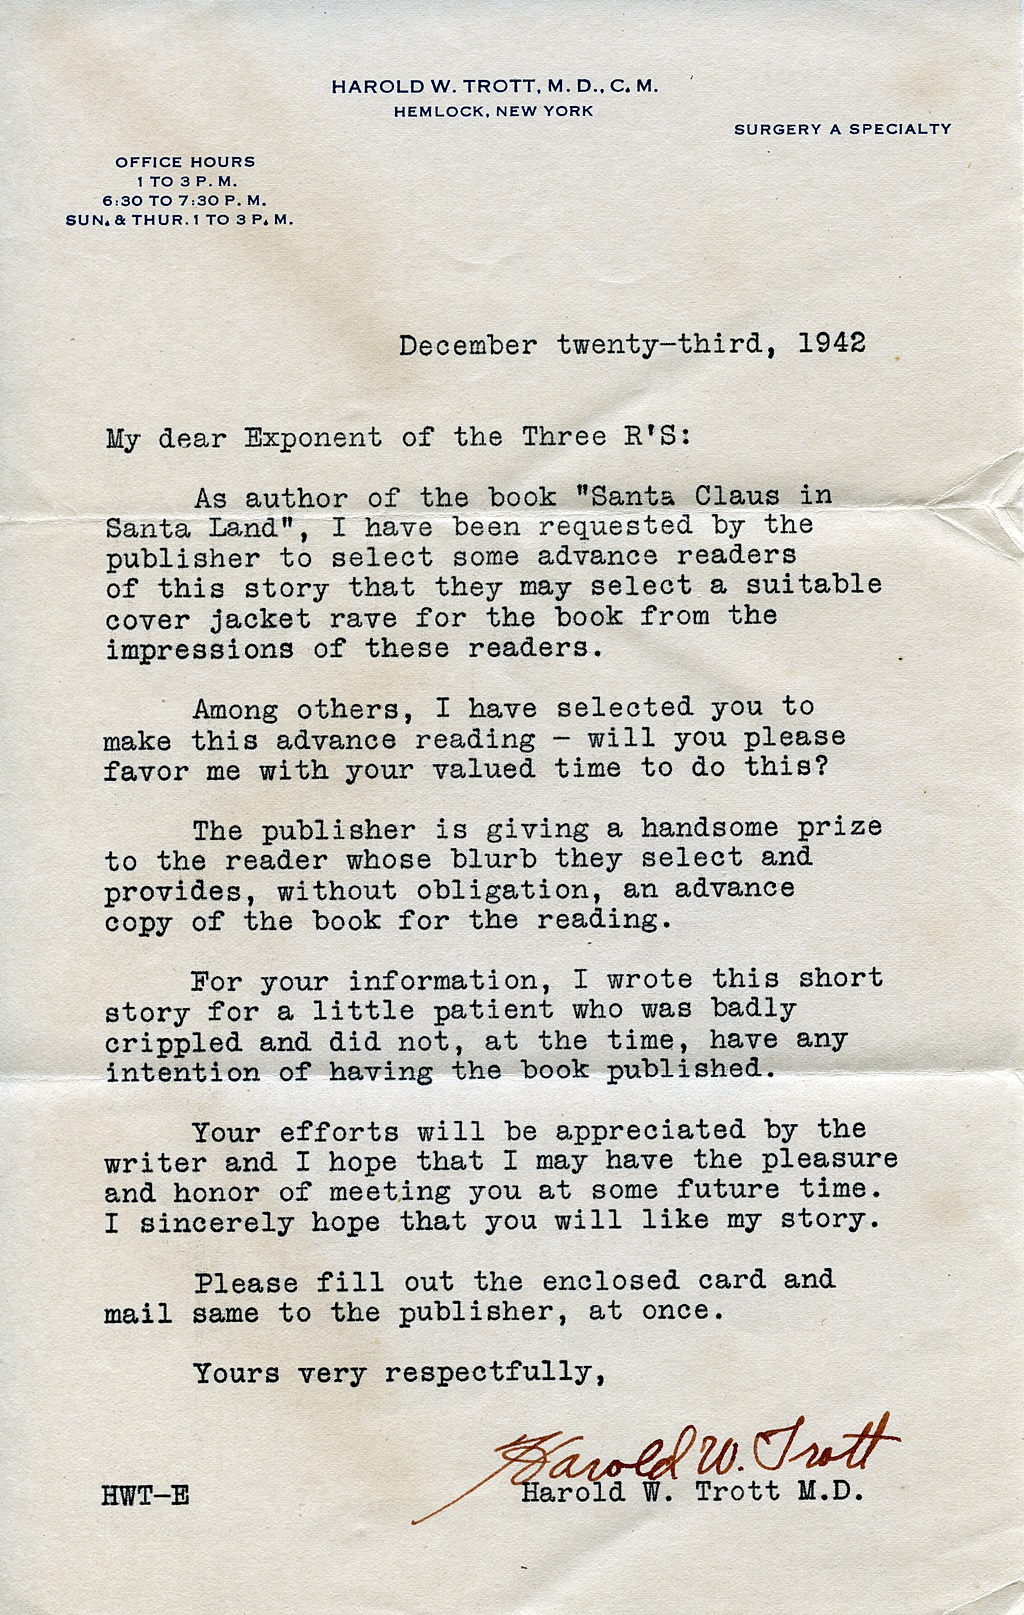 Dr harold w trott letter of 1942 to book reviewers hemlock and this is the letter he sent to selected people to ask them to review his book this letter was shared by lore disalvo spiritdancerdesigns Image collections